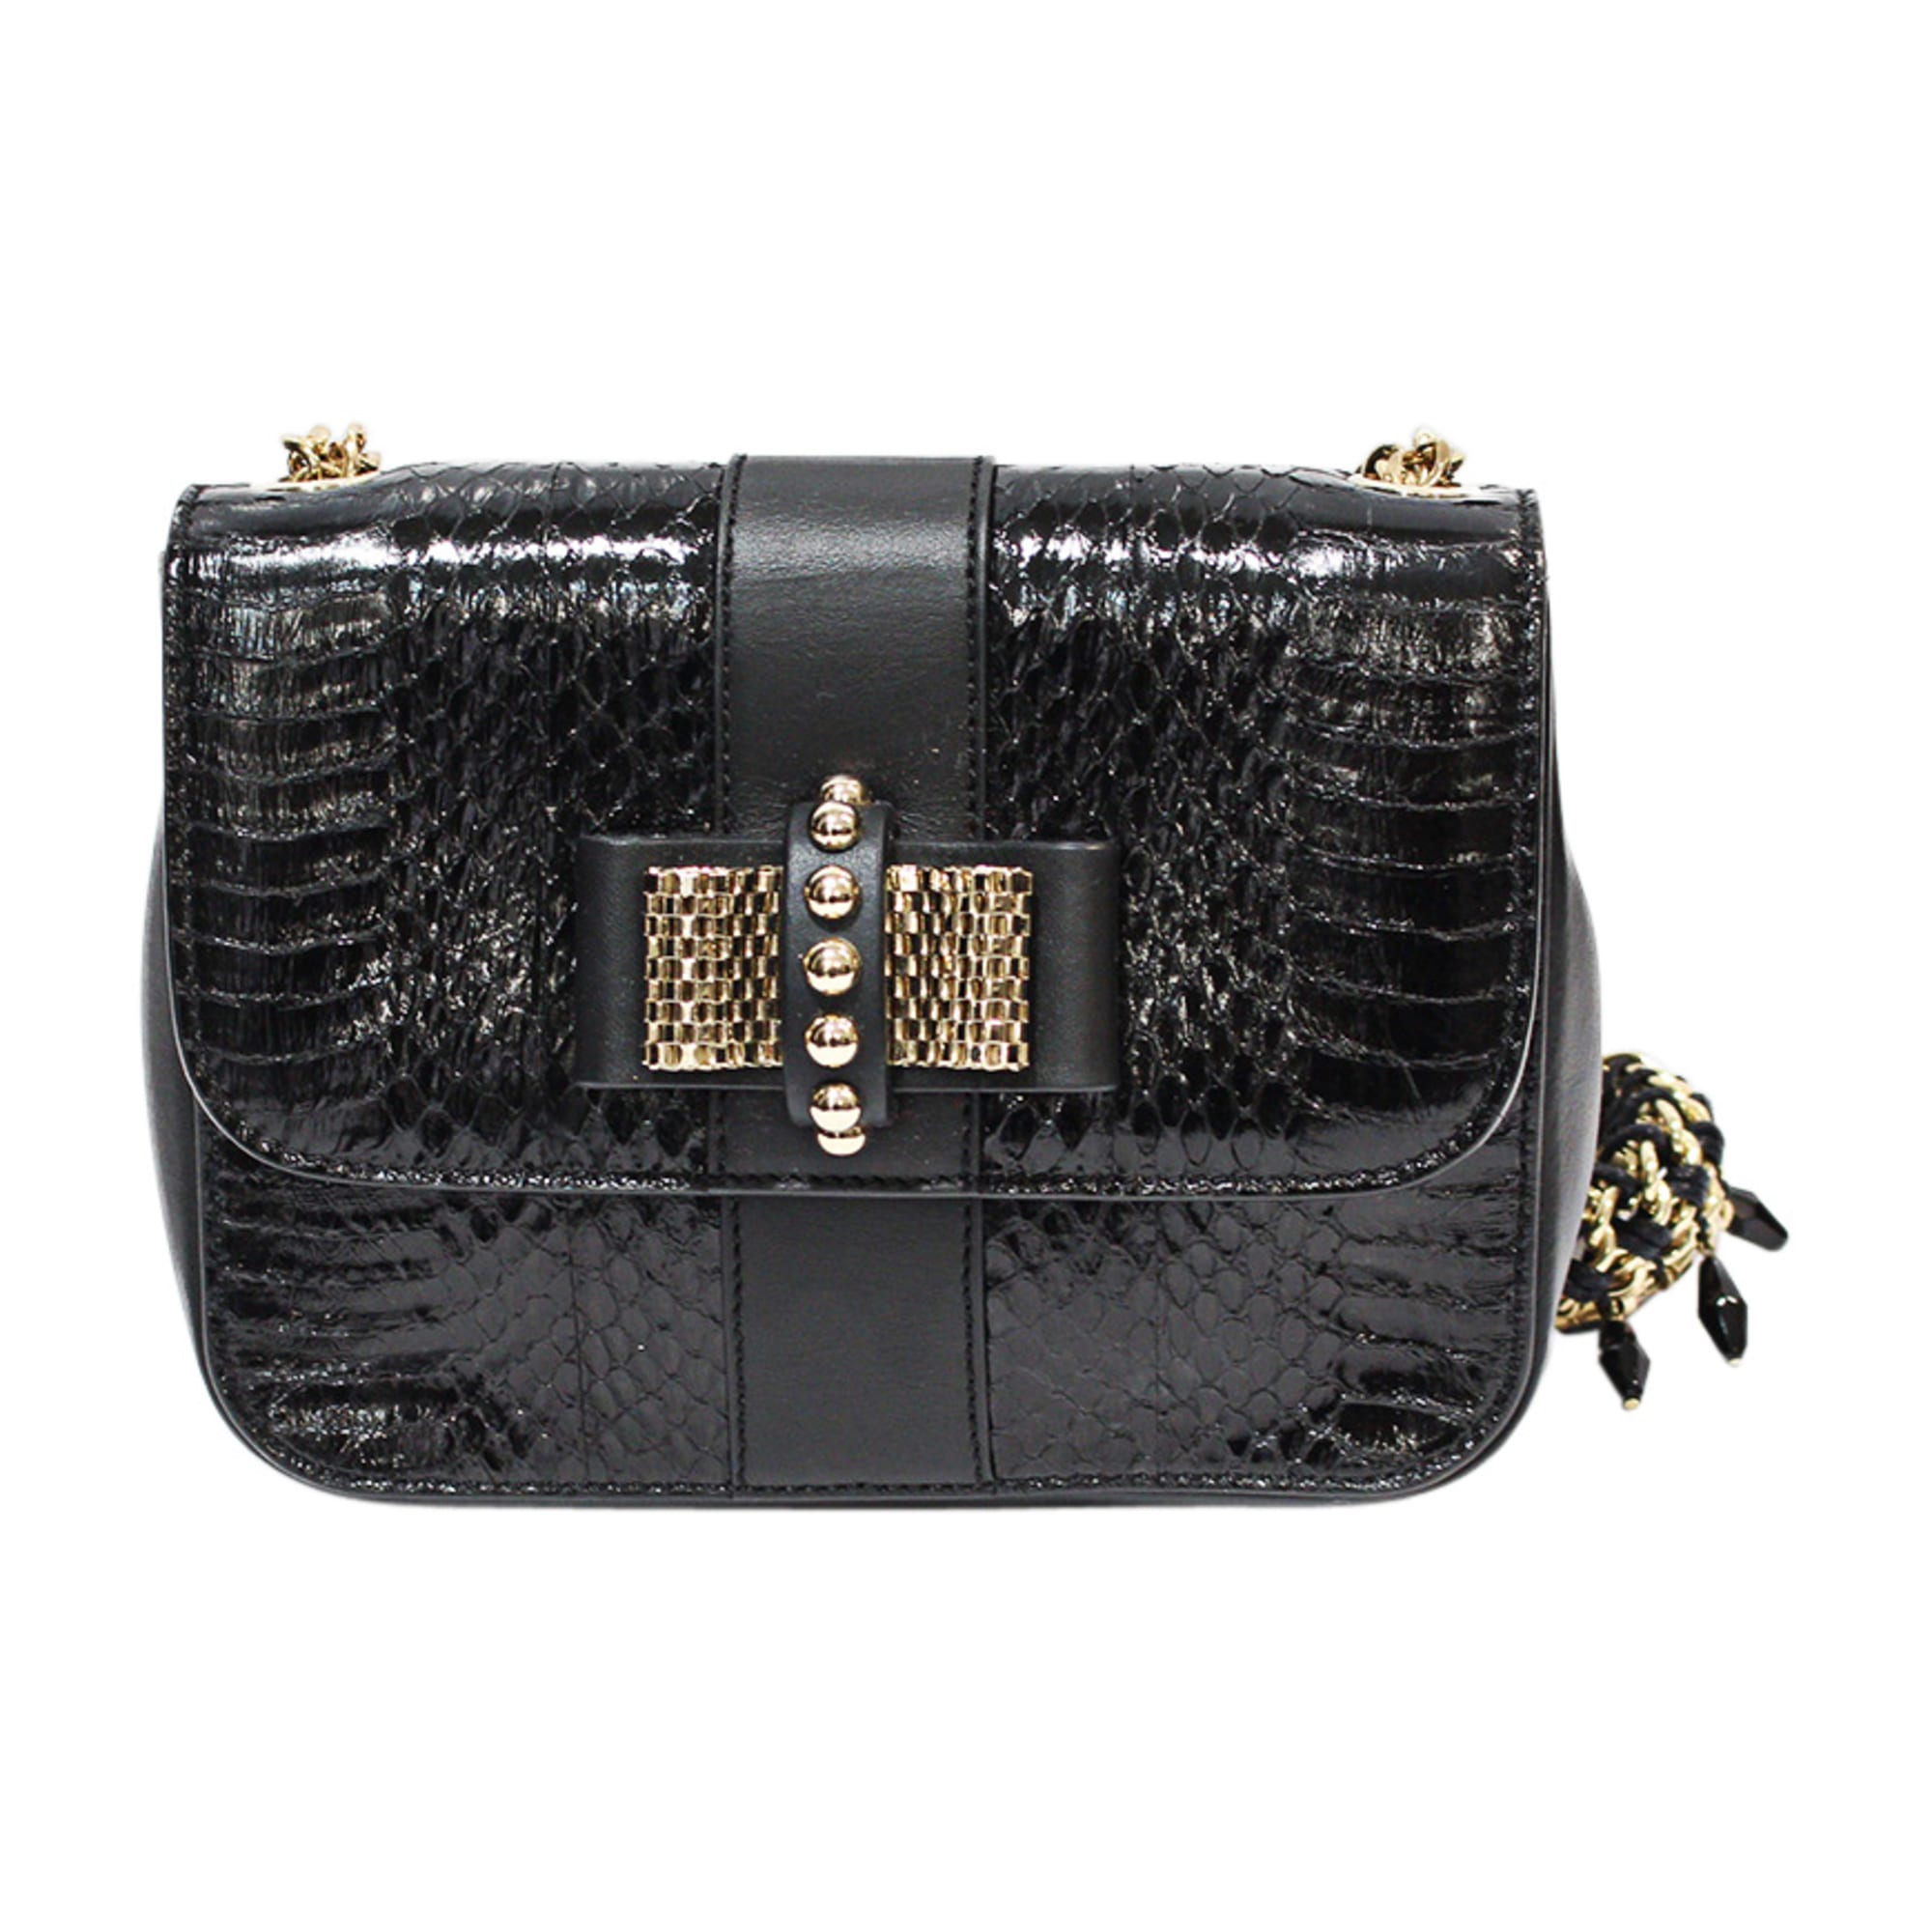 Leather Shoulder Bag CHRISTIAN LOUBOUTIN Black